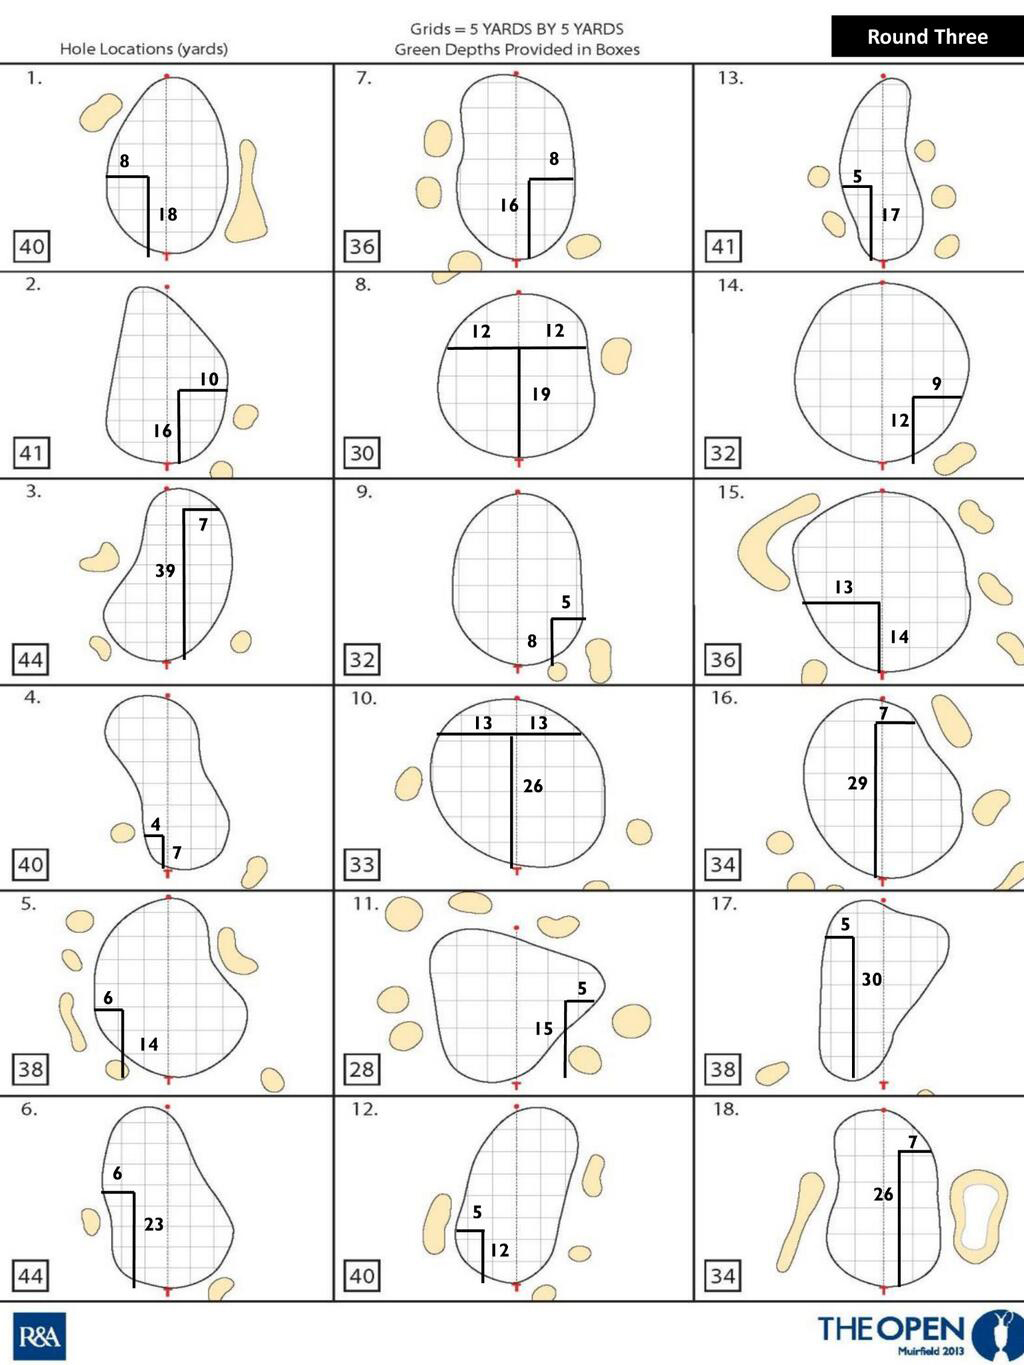 A look at the third-round hole locations at the Open Championship.